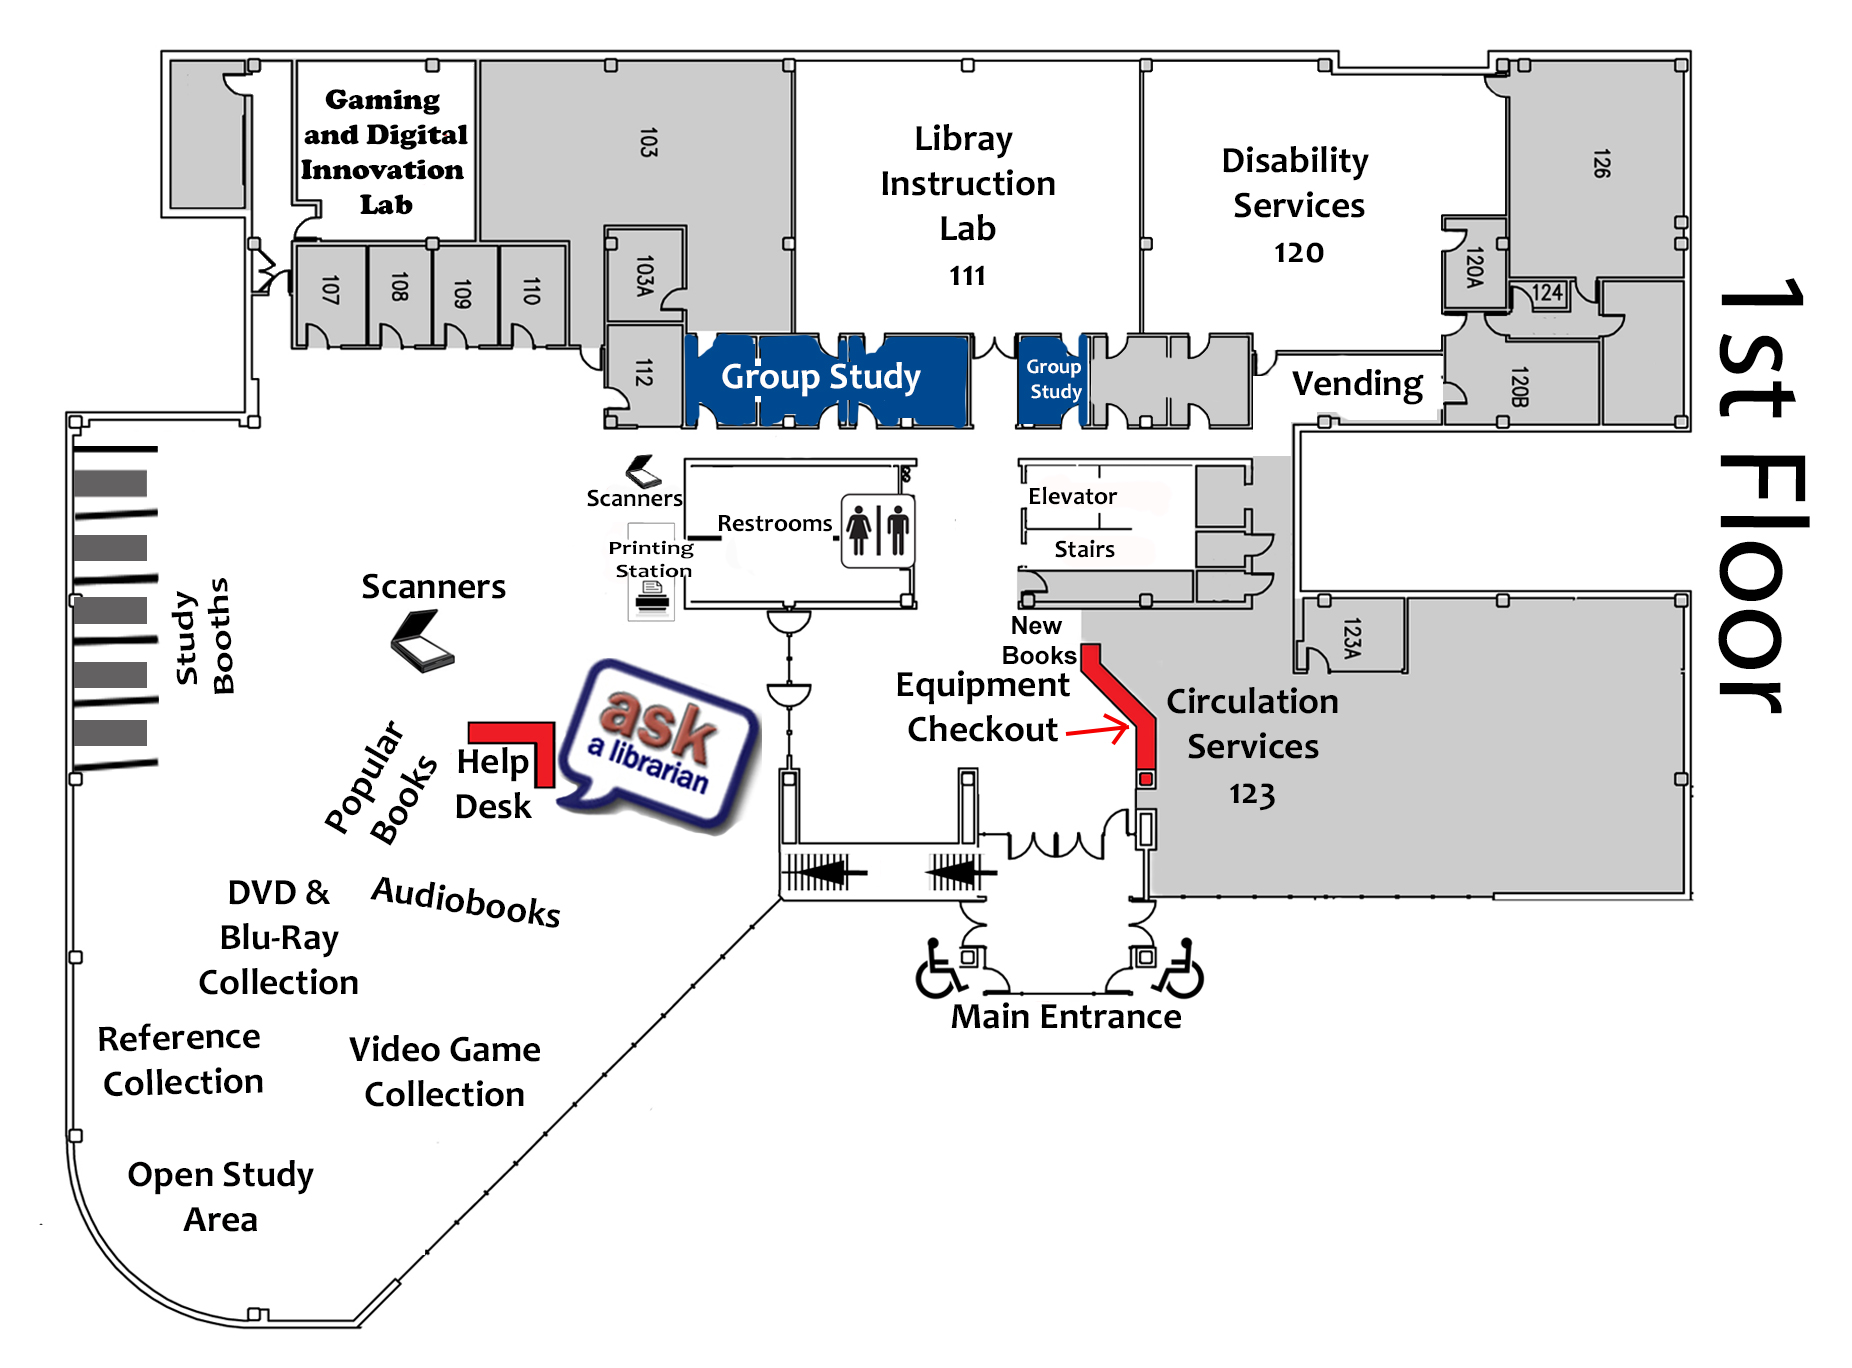 Image map of the first floor of the library